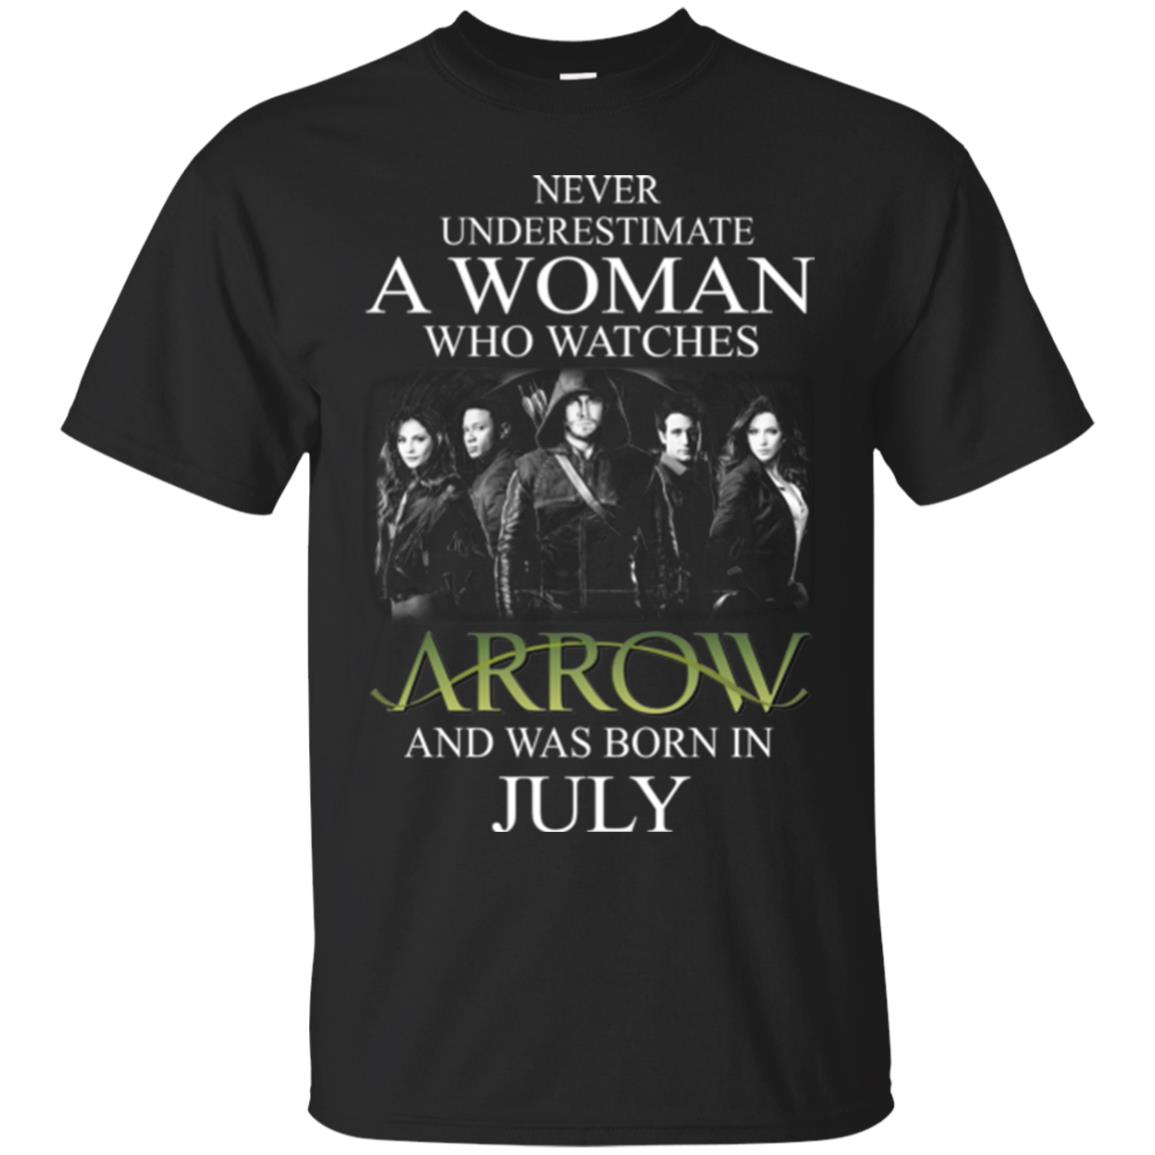 Never Underestimate A woman who watches Arrow and was born in July shirt - image 1517